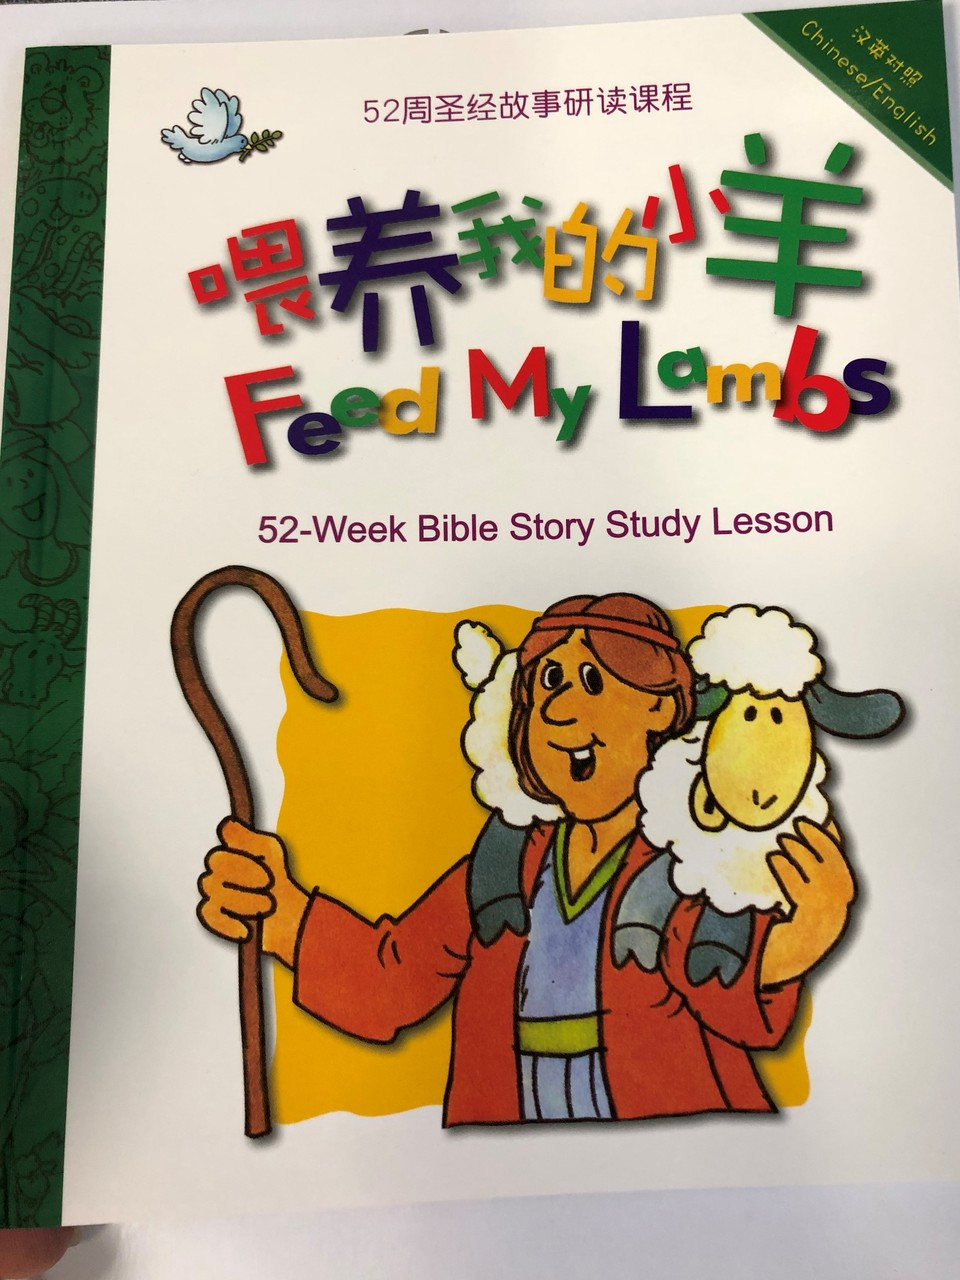 Feed my Lambs / 喂我的羊 / 52-Week Bible Study Lesson for children /  Chinese-English bilingual activity book / Children ages 5-8 / Excellent for  Sunday